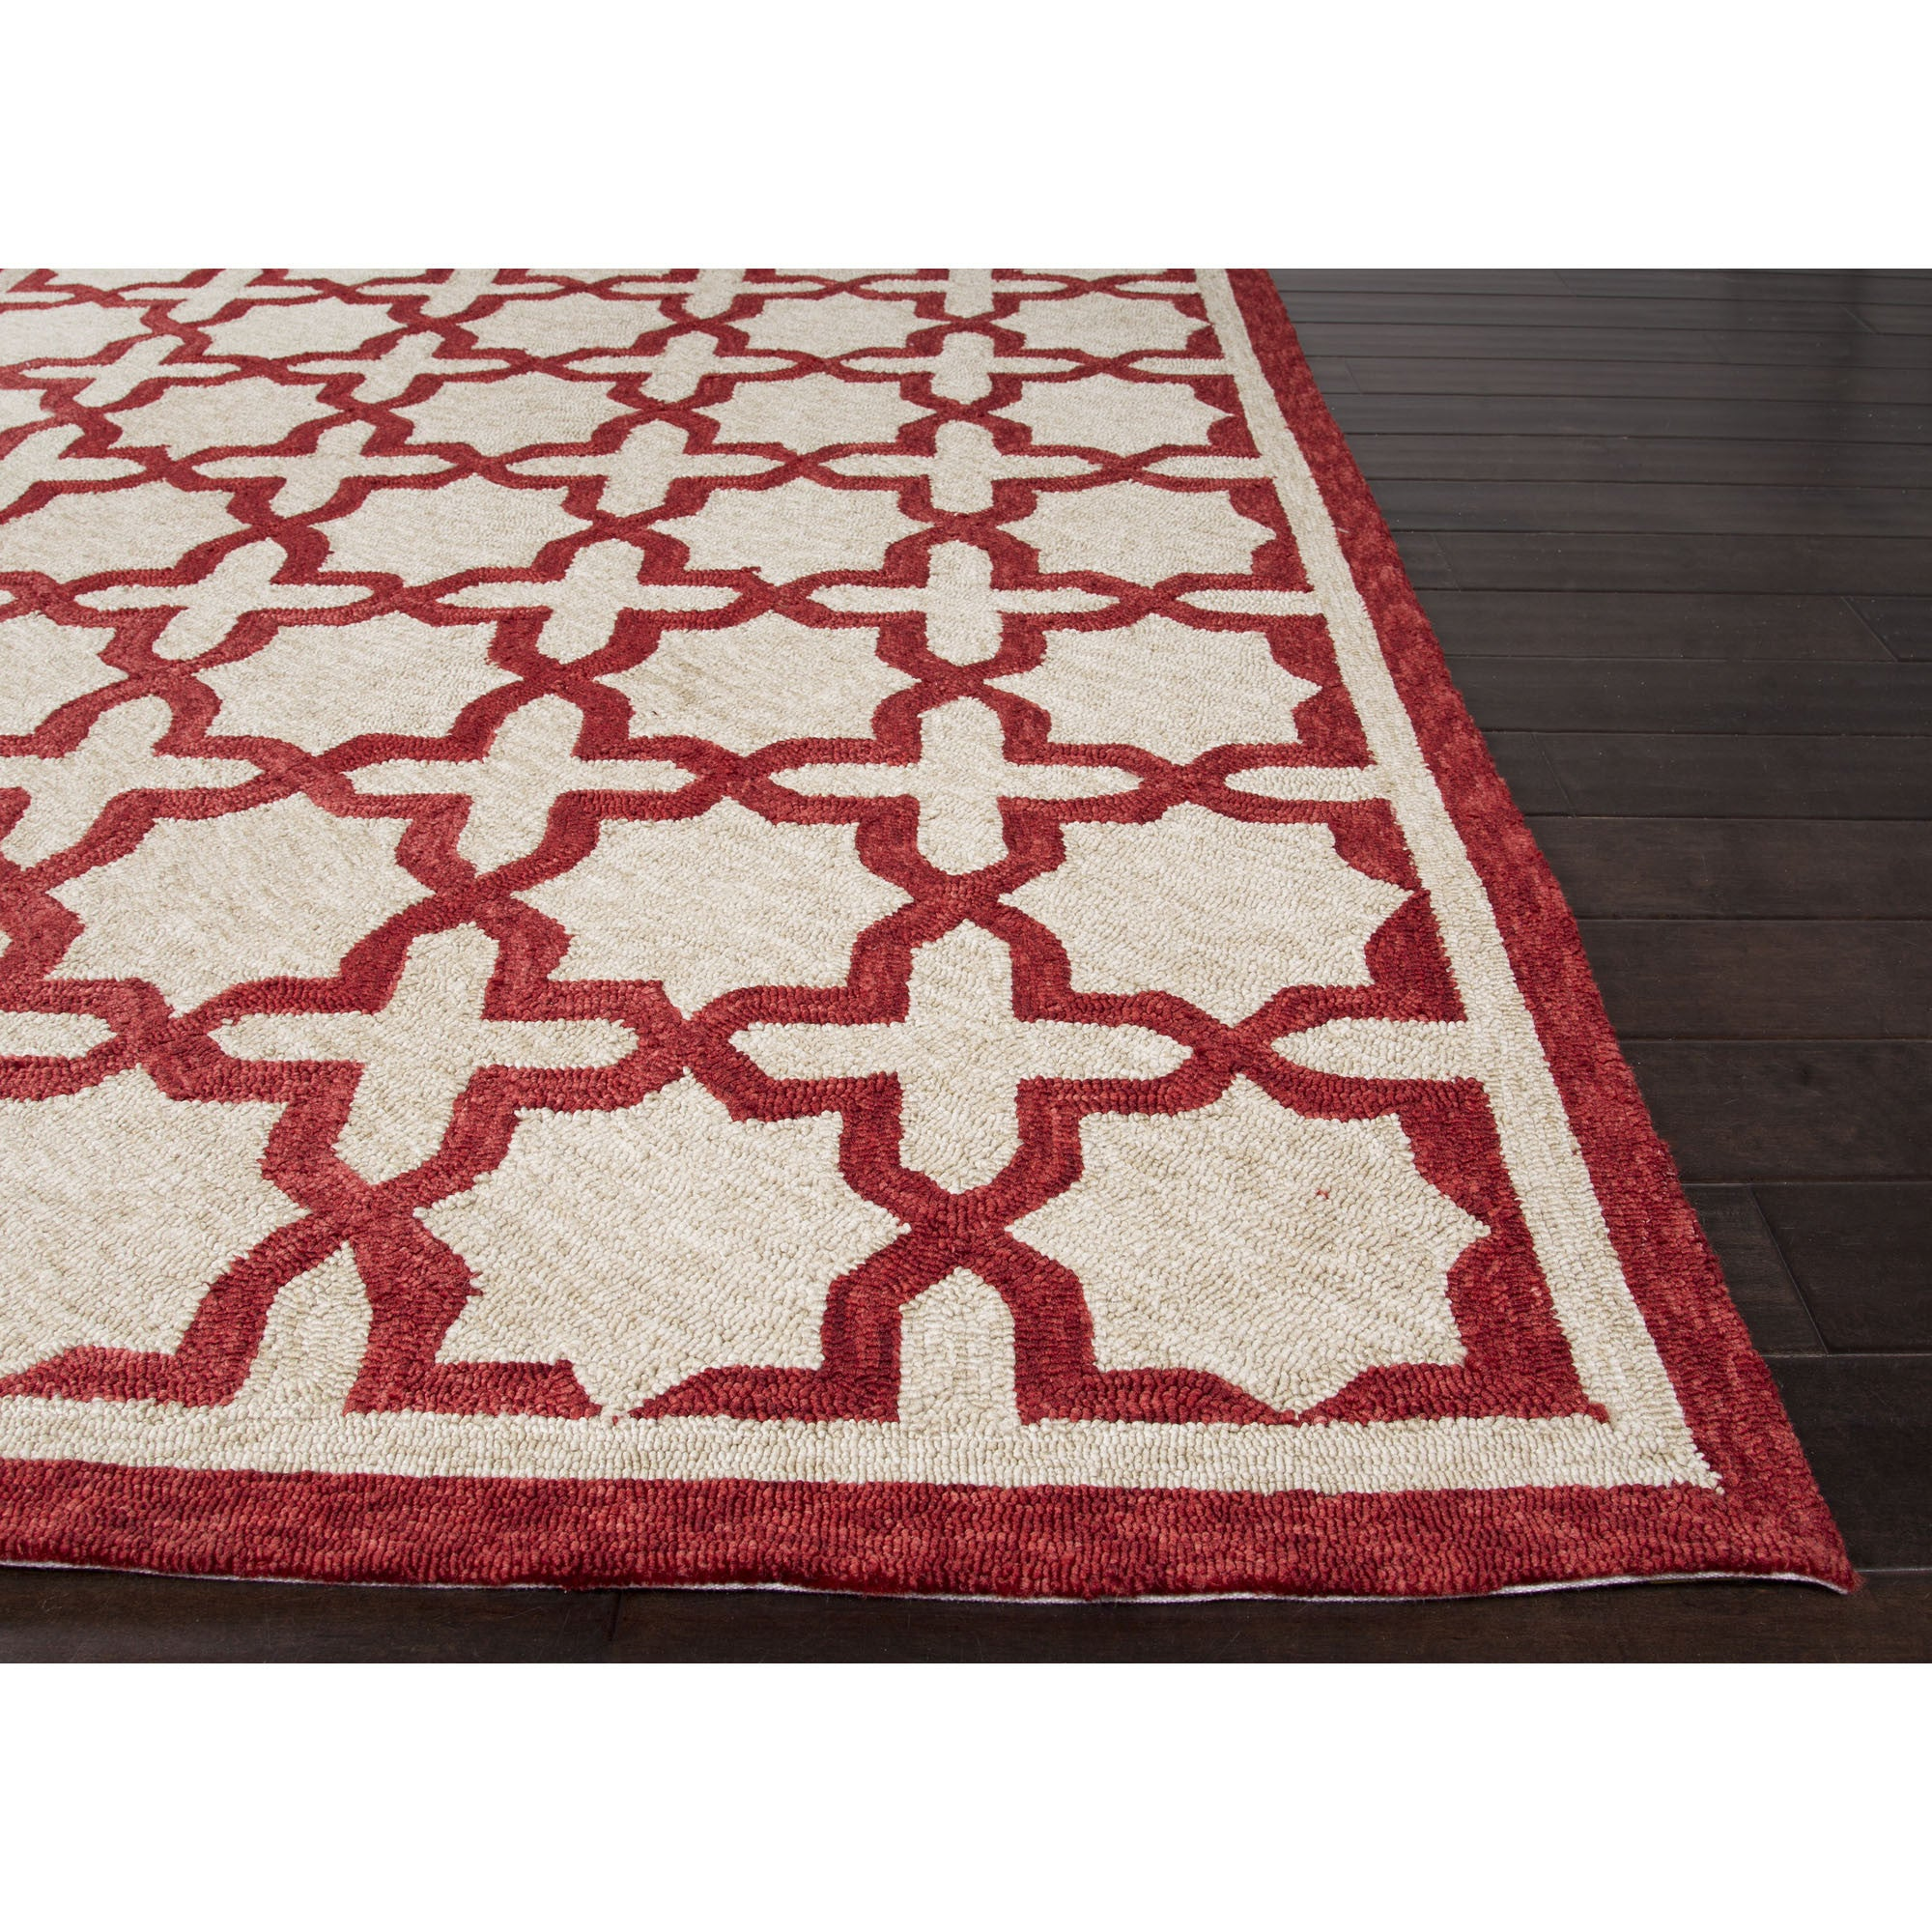 Jaipur Rugs IndoorOutdoor Moroccan Pattern White/Red